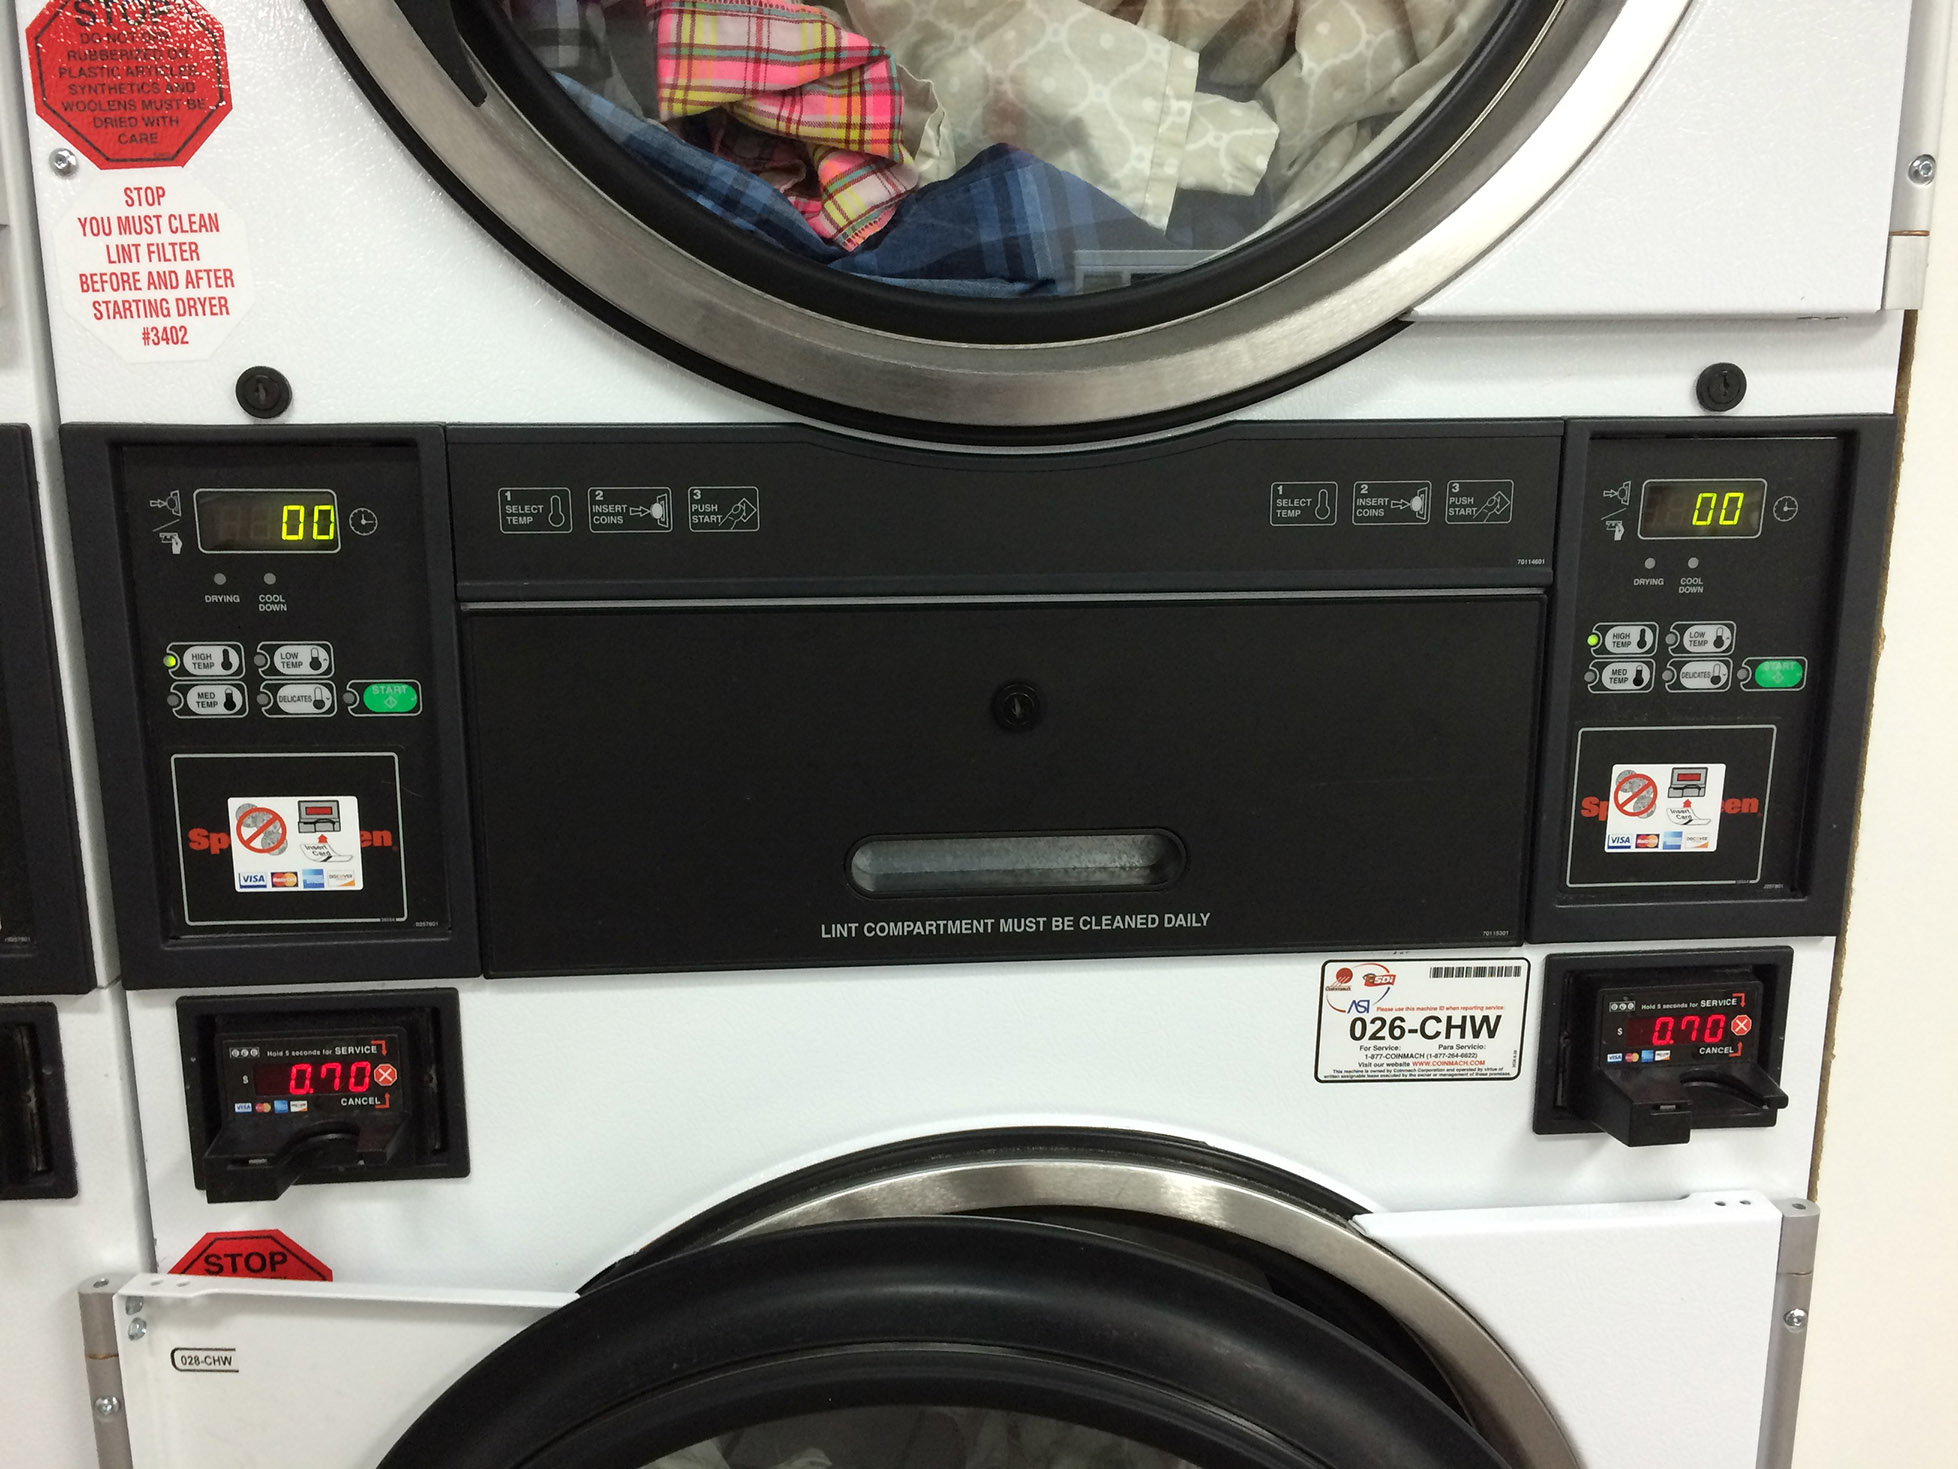 Dryer_Gen